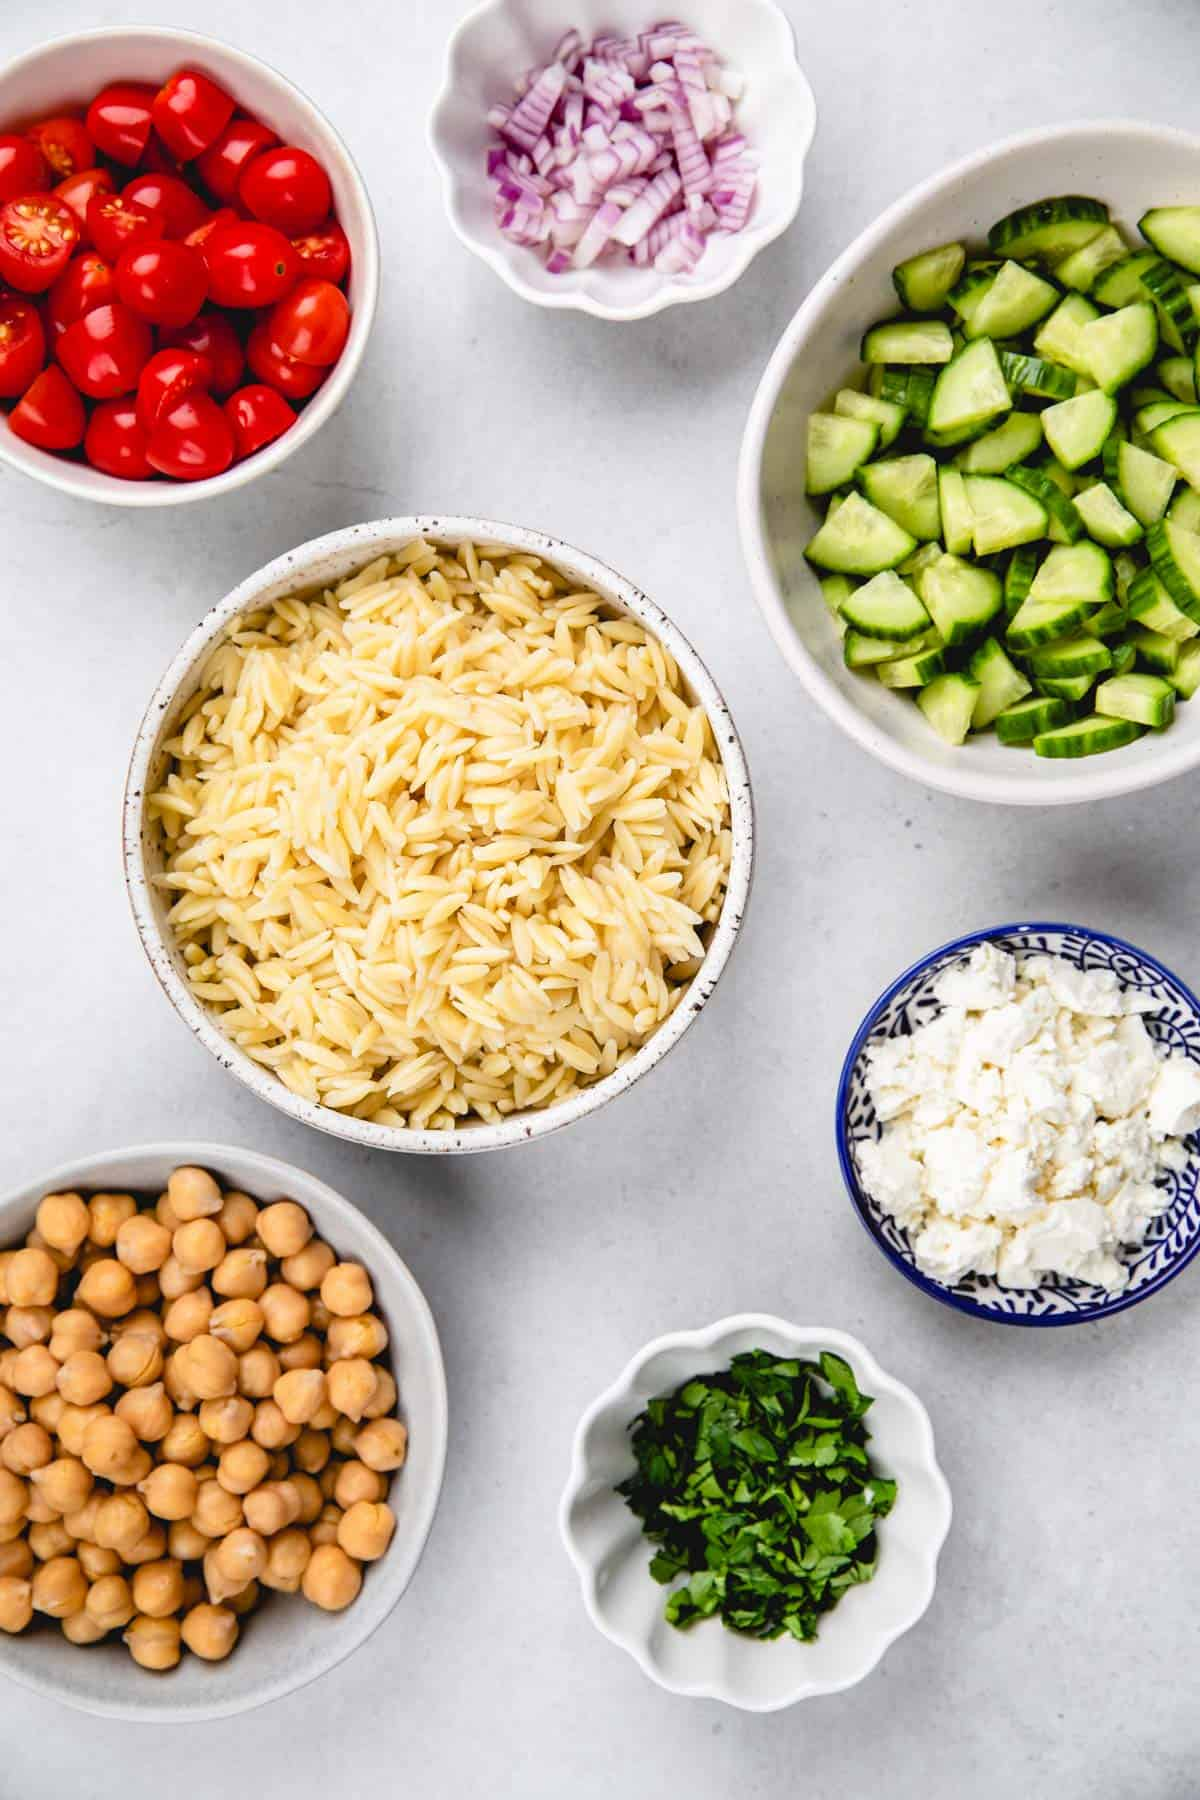 Prepped ingredients for orzo salad in separate bowls.